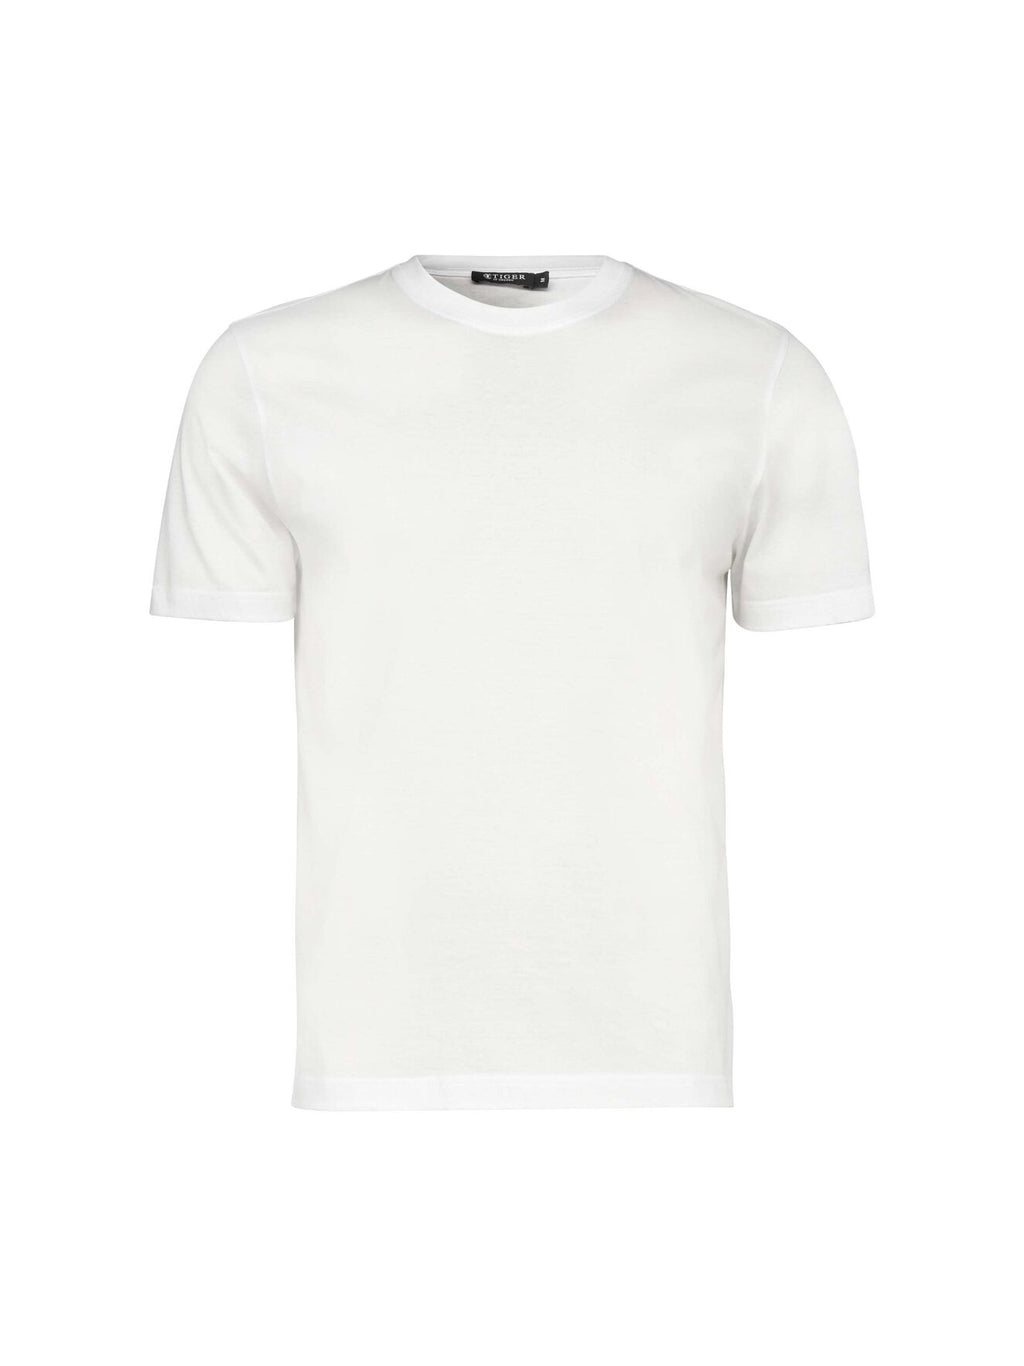 lyoell t shirt pure white t62560005 Tiger of Sweden